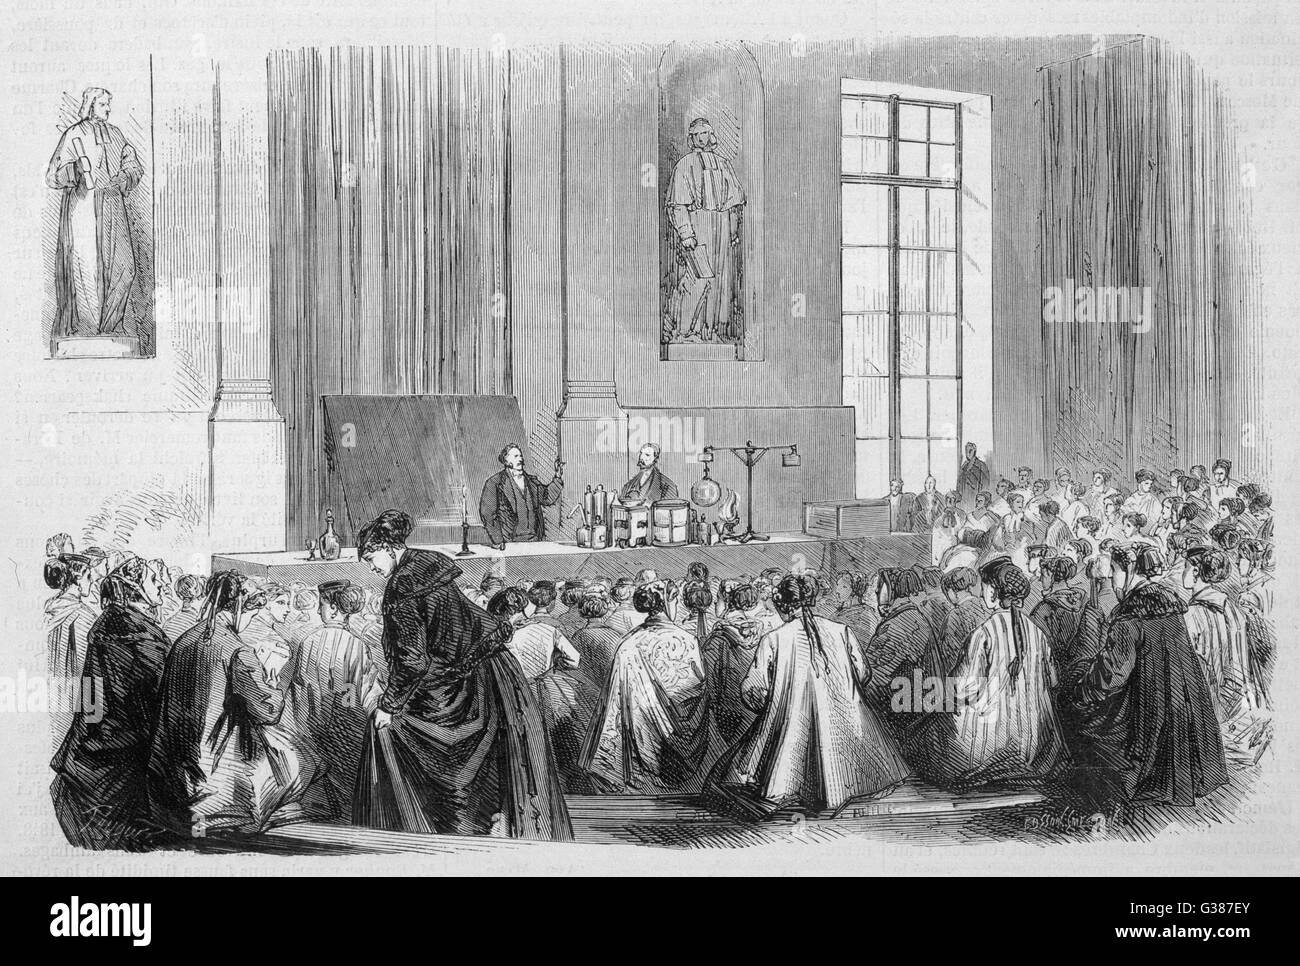 Lectures in Physics for girls  at the Sorbonne, Paris        Date: 1867 - Stock Image